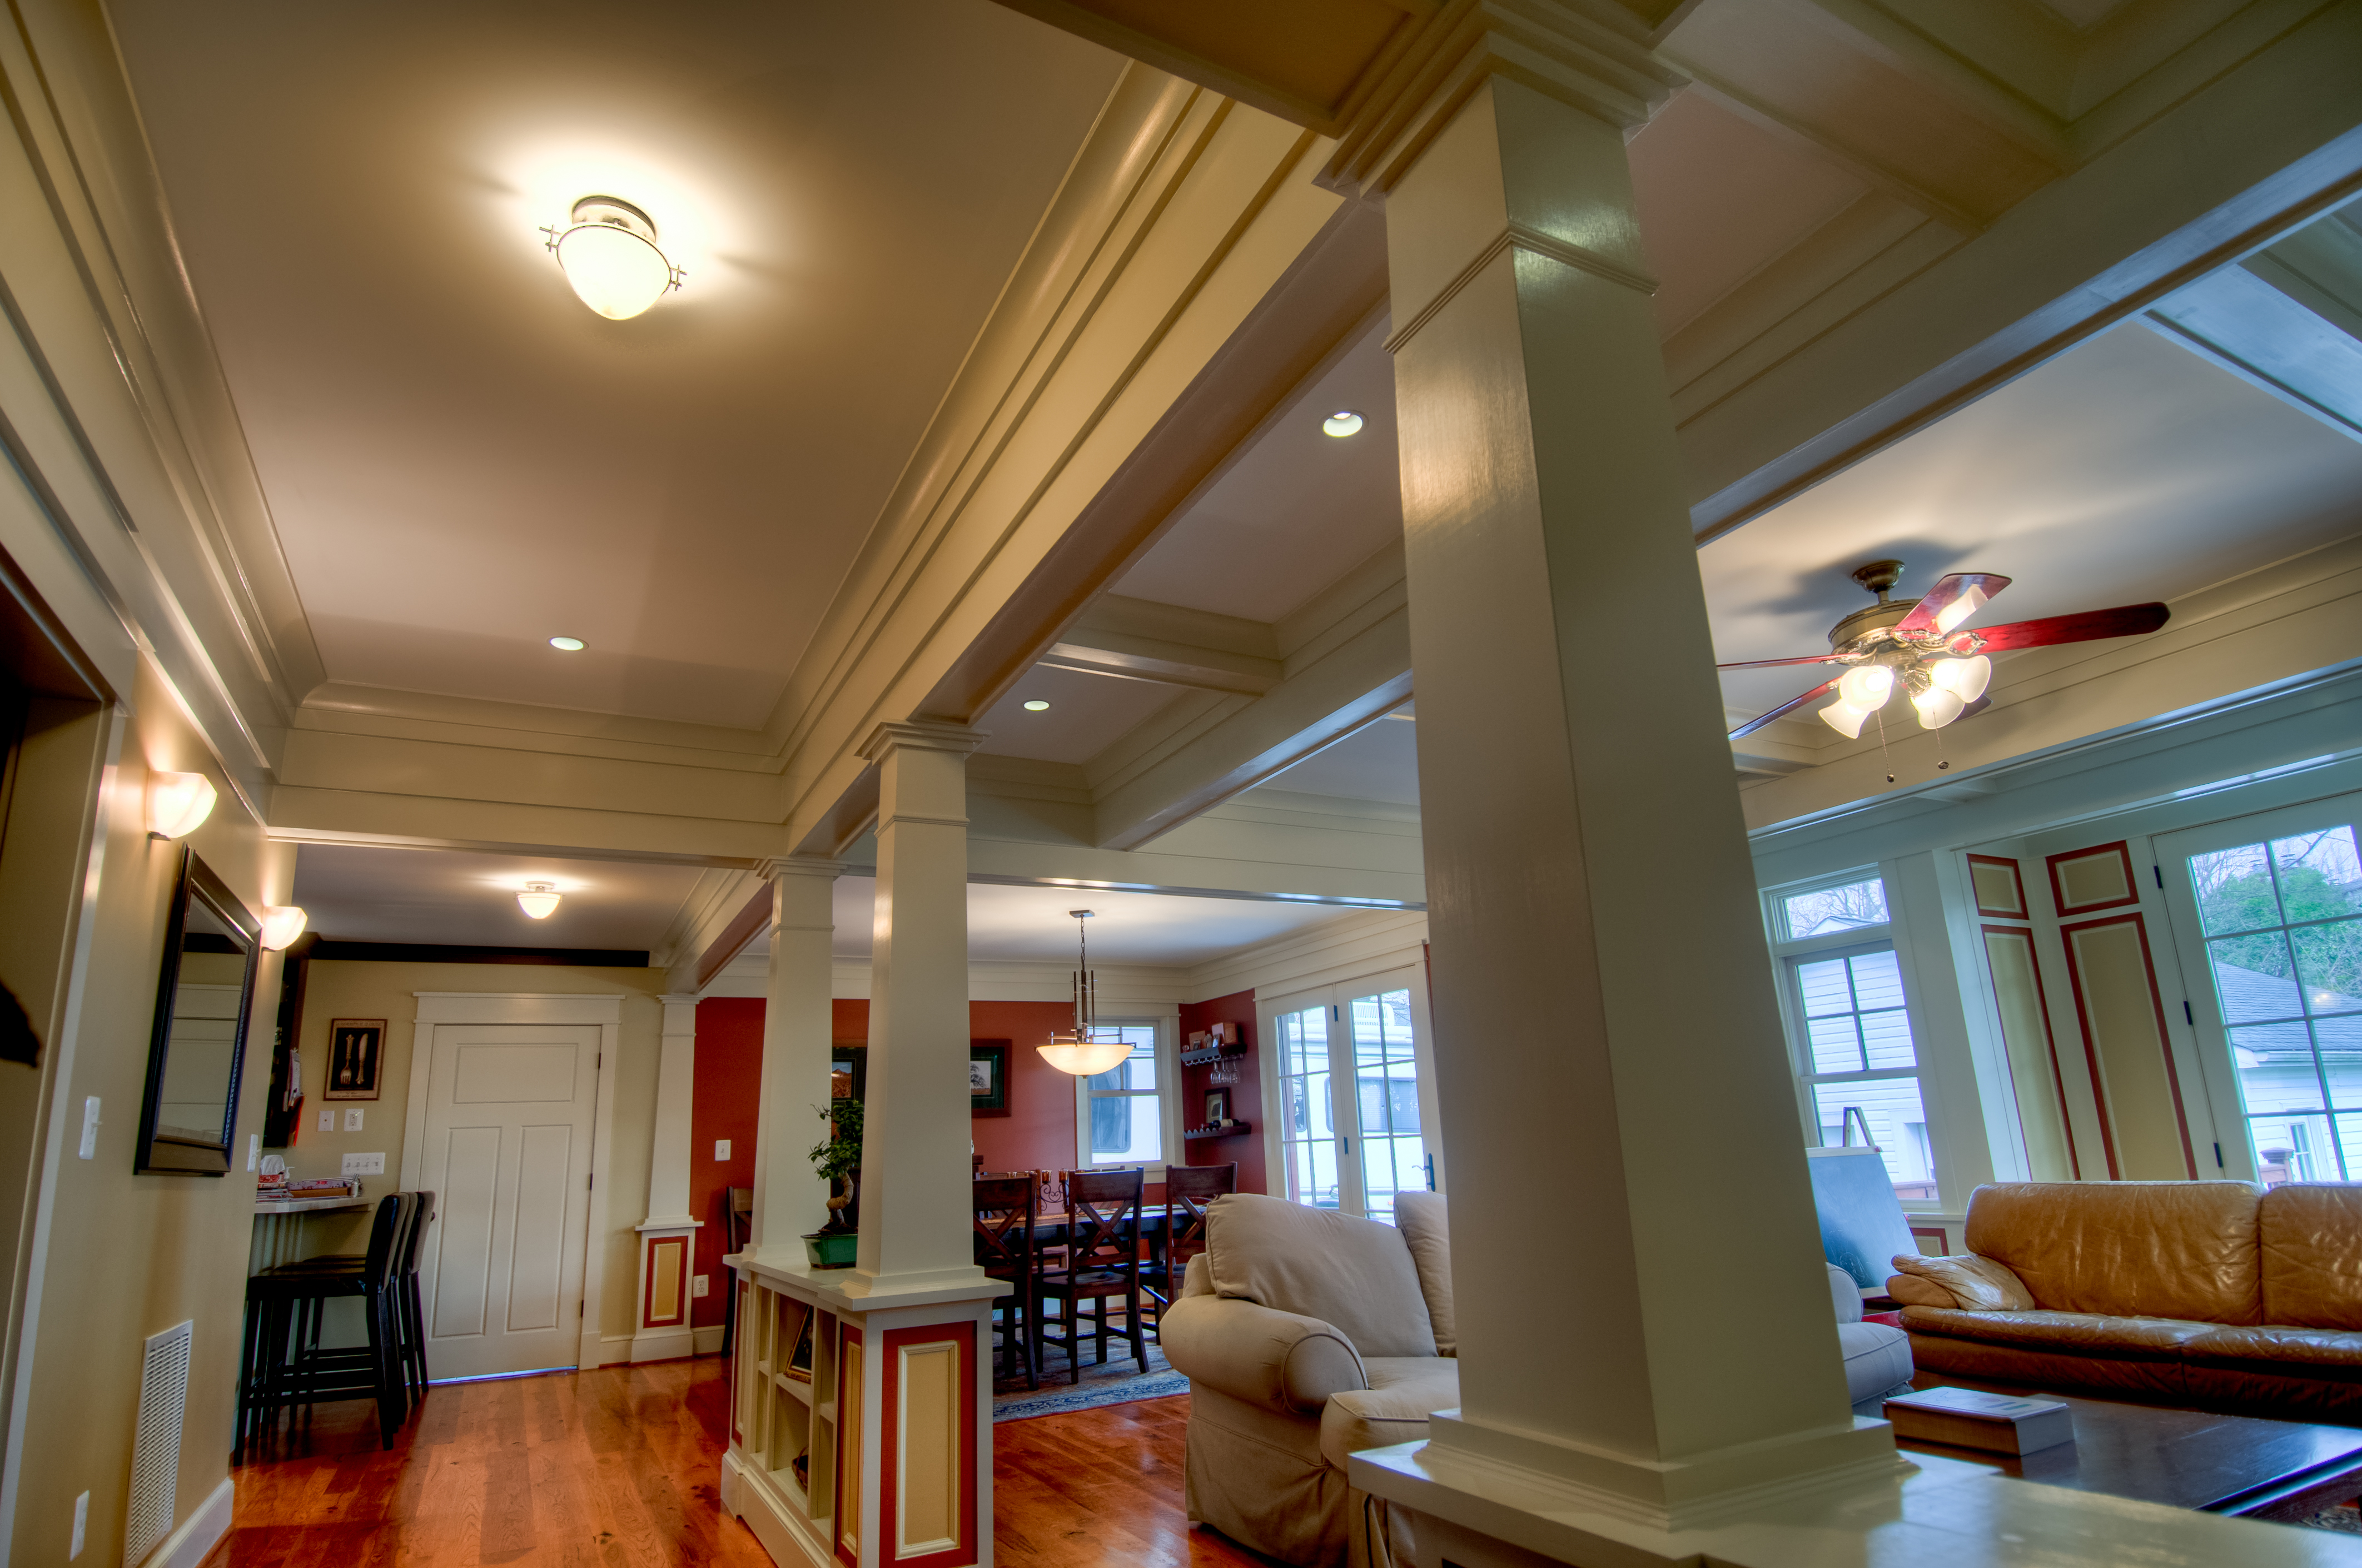 The foyer opens into the living room with a view of the dining room. The living room is divided from the hallway by a series of columns. The tray ceiling of the hallway and the coffered ceiling of the living room further distinguishes the rooms from one another.